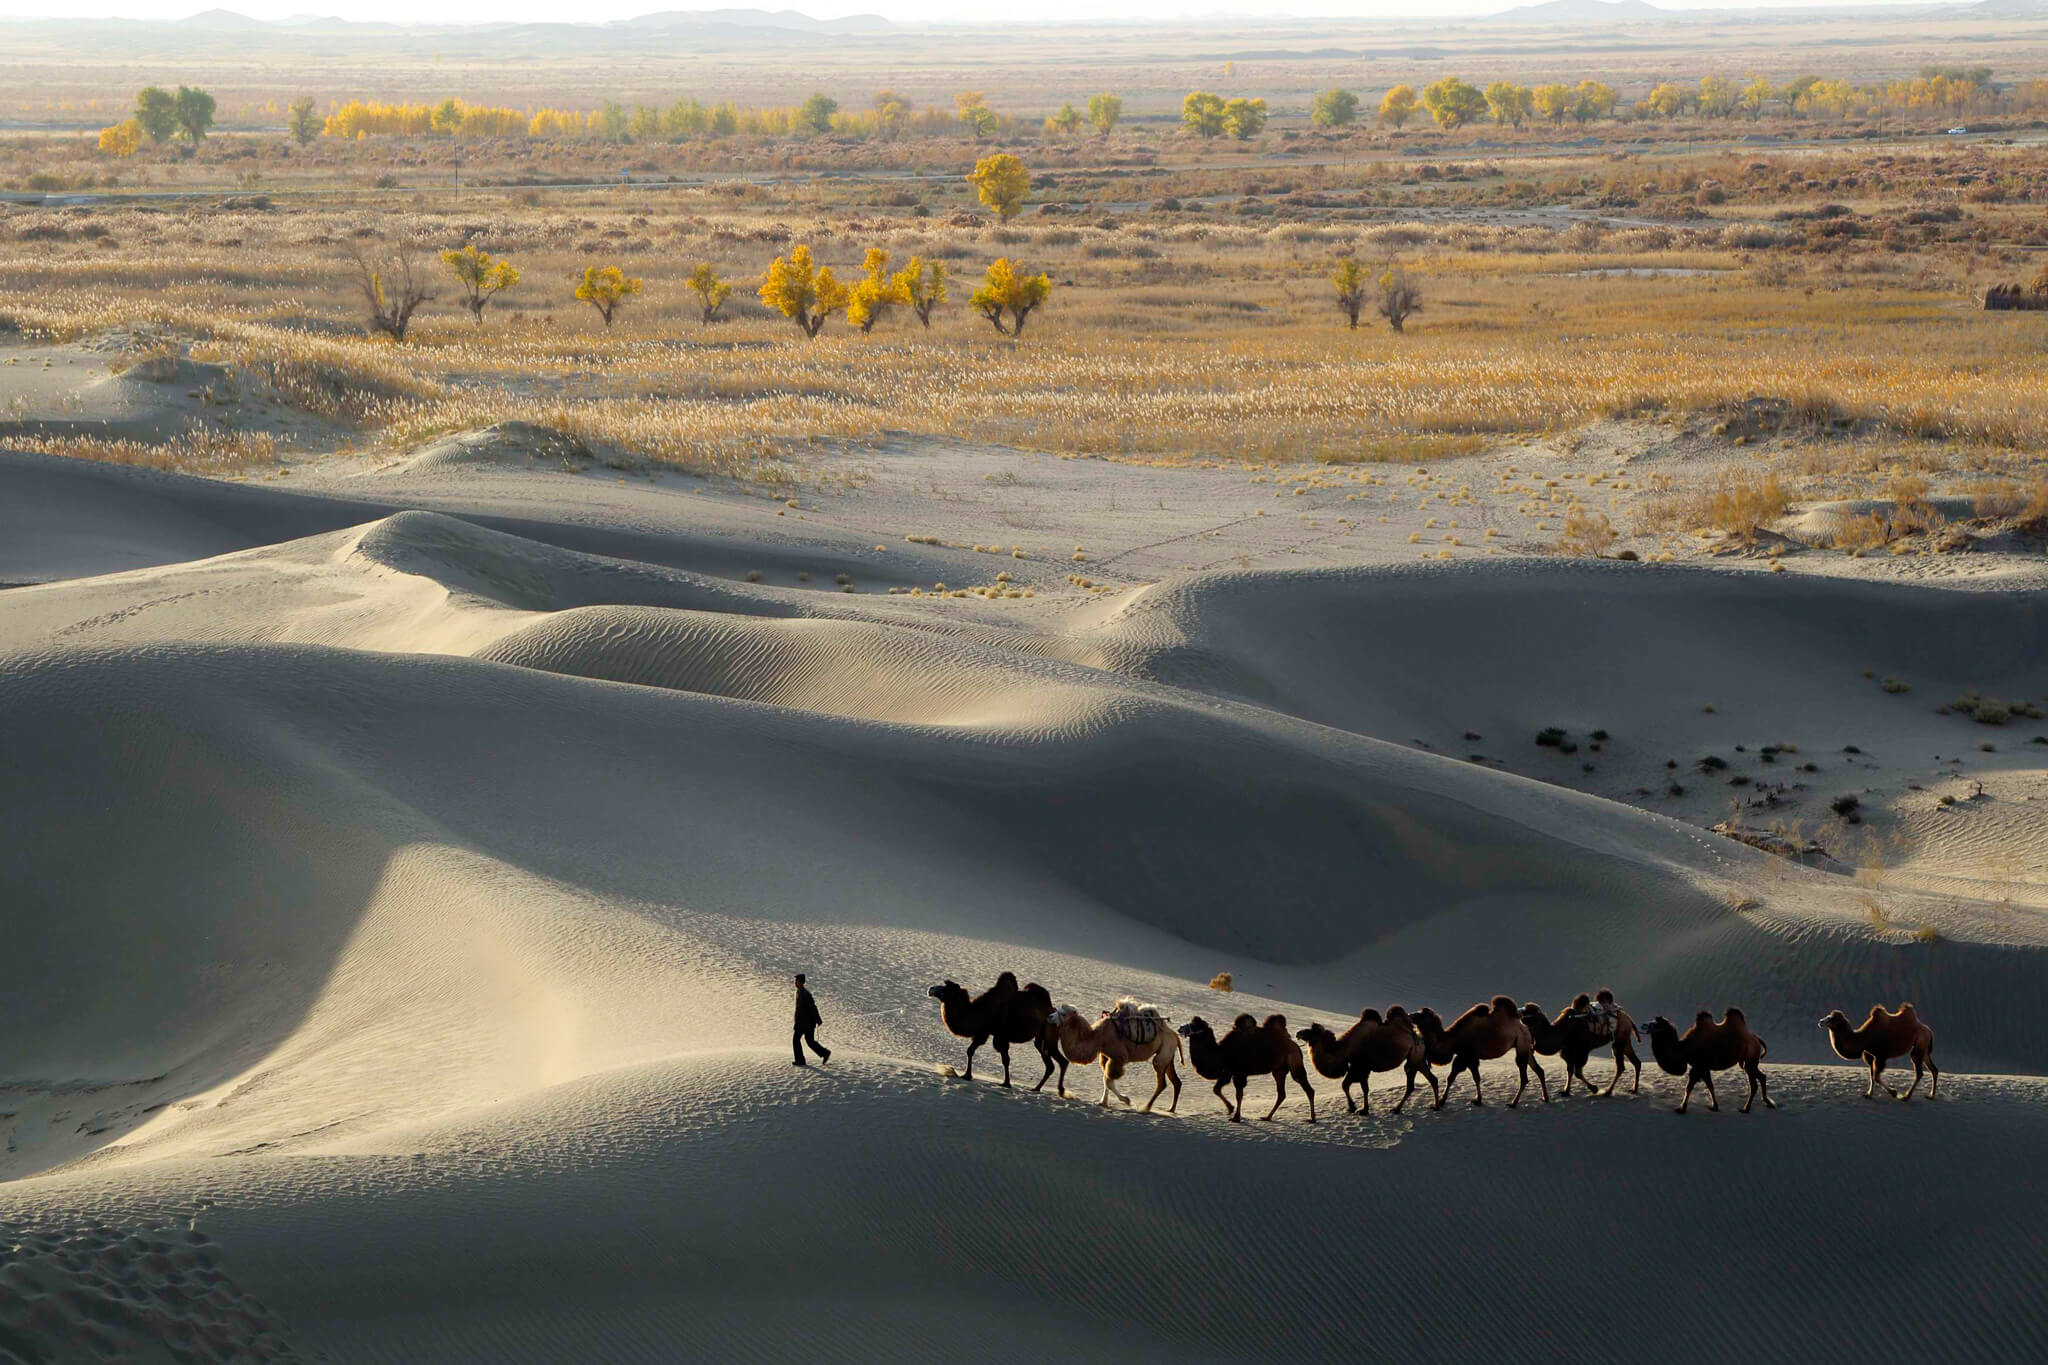 A man leads camels at the edge of the Taklamakan Desert in Xinjiang Uighur Autonomous Region, October 29, 2013. Picture taken October 29, 2013. REUTERS/China Daily (CHINA - Tags: SOCIETY ENVIRONMENT ANIMALS TPX IMAGES OF THE DAY) CHINA OUT. NO COMMERCIAL OR EDITORIAL SALES IN CHINA